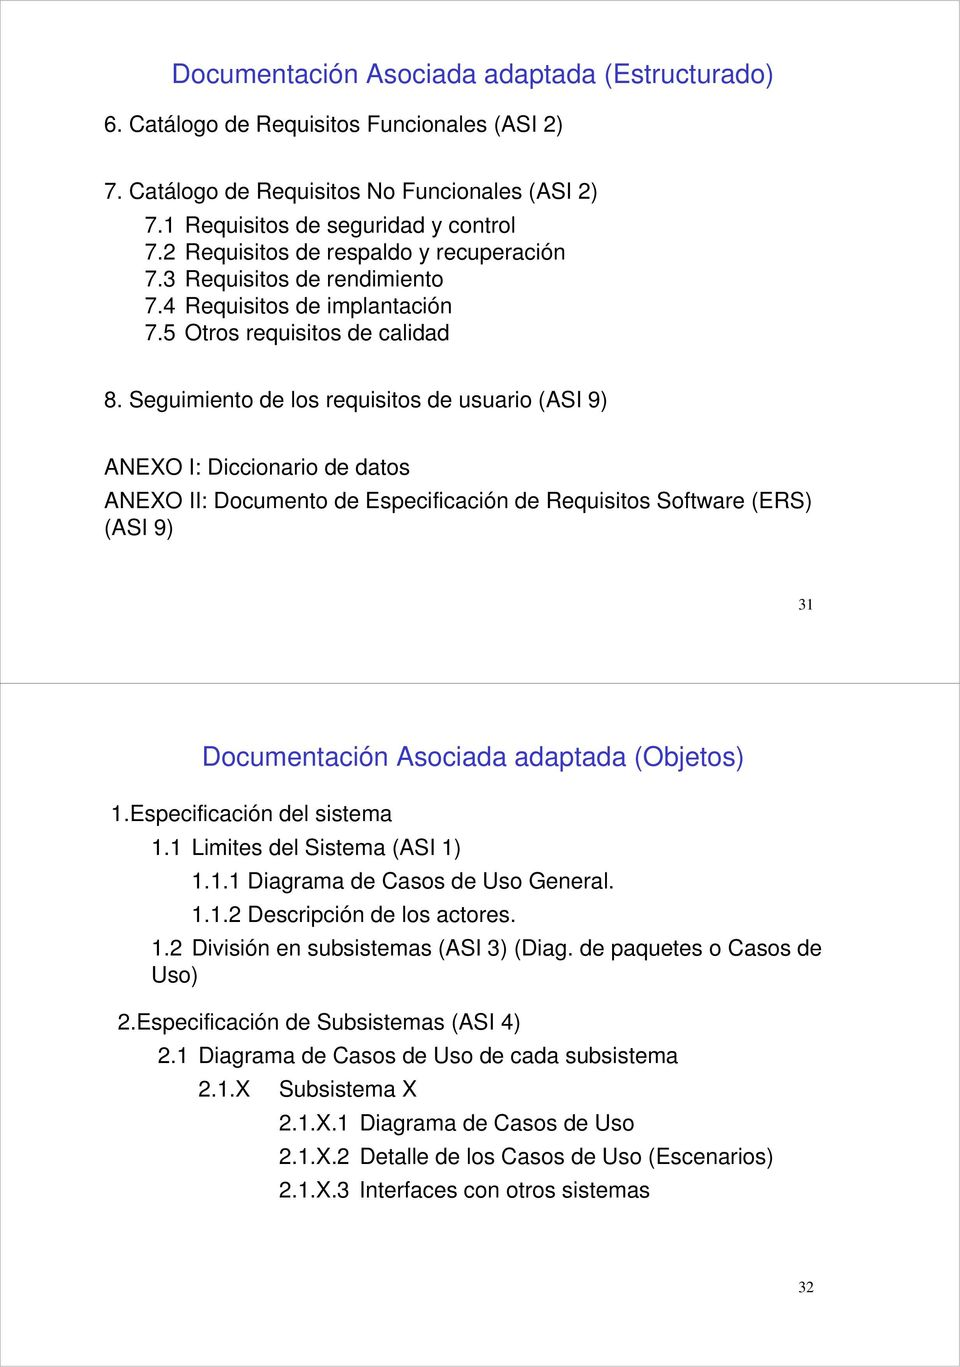 Seguimiento de los requisitos de usuario (ASI 9) ANEXO I: Diccionario de datos ANEXO II: Documento de Especificación de Requisitos Software (ERS) (ASI 9) 31 Documentación Asociada adaptada (Objetos)